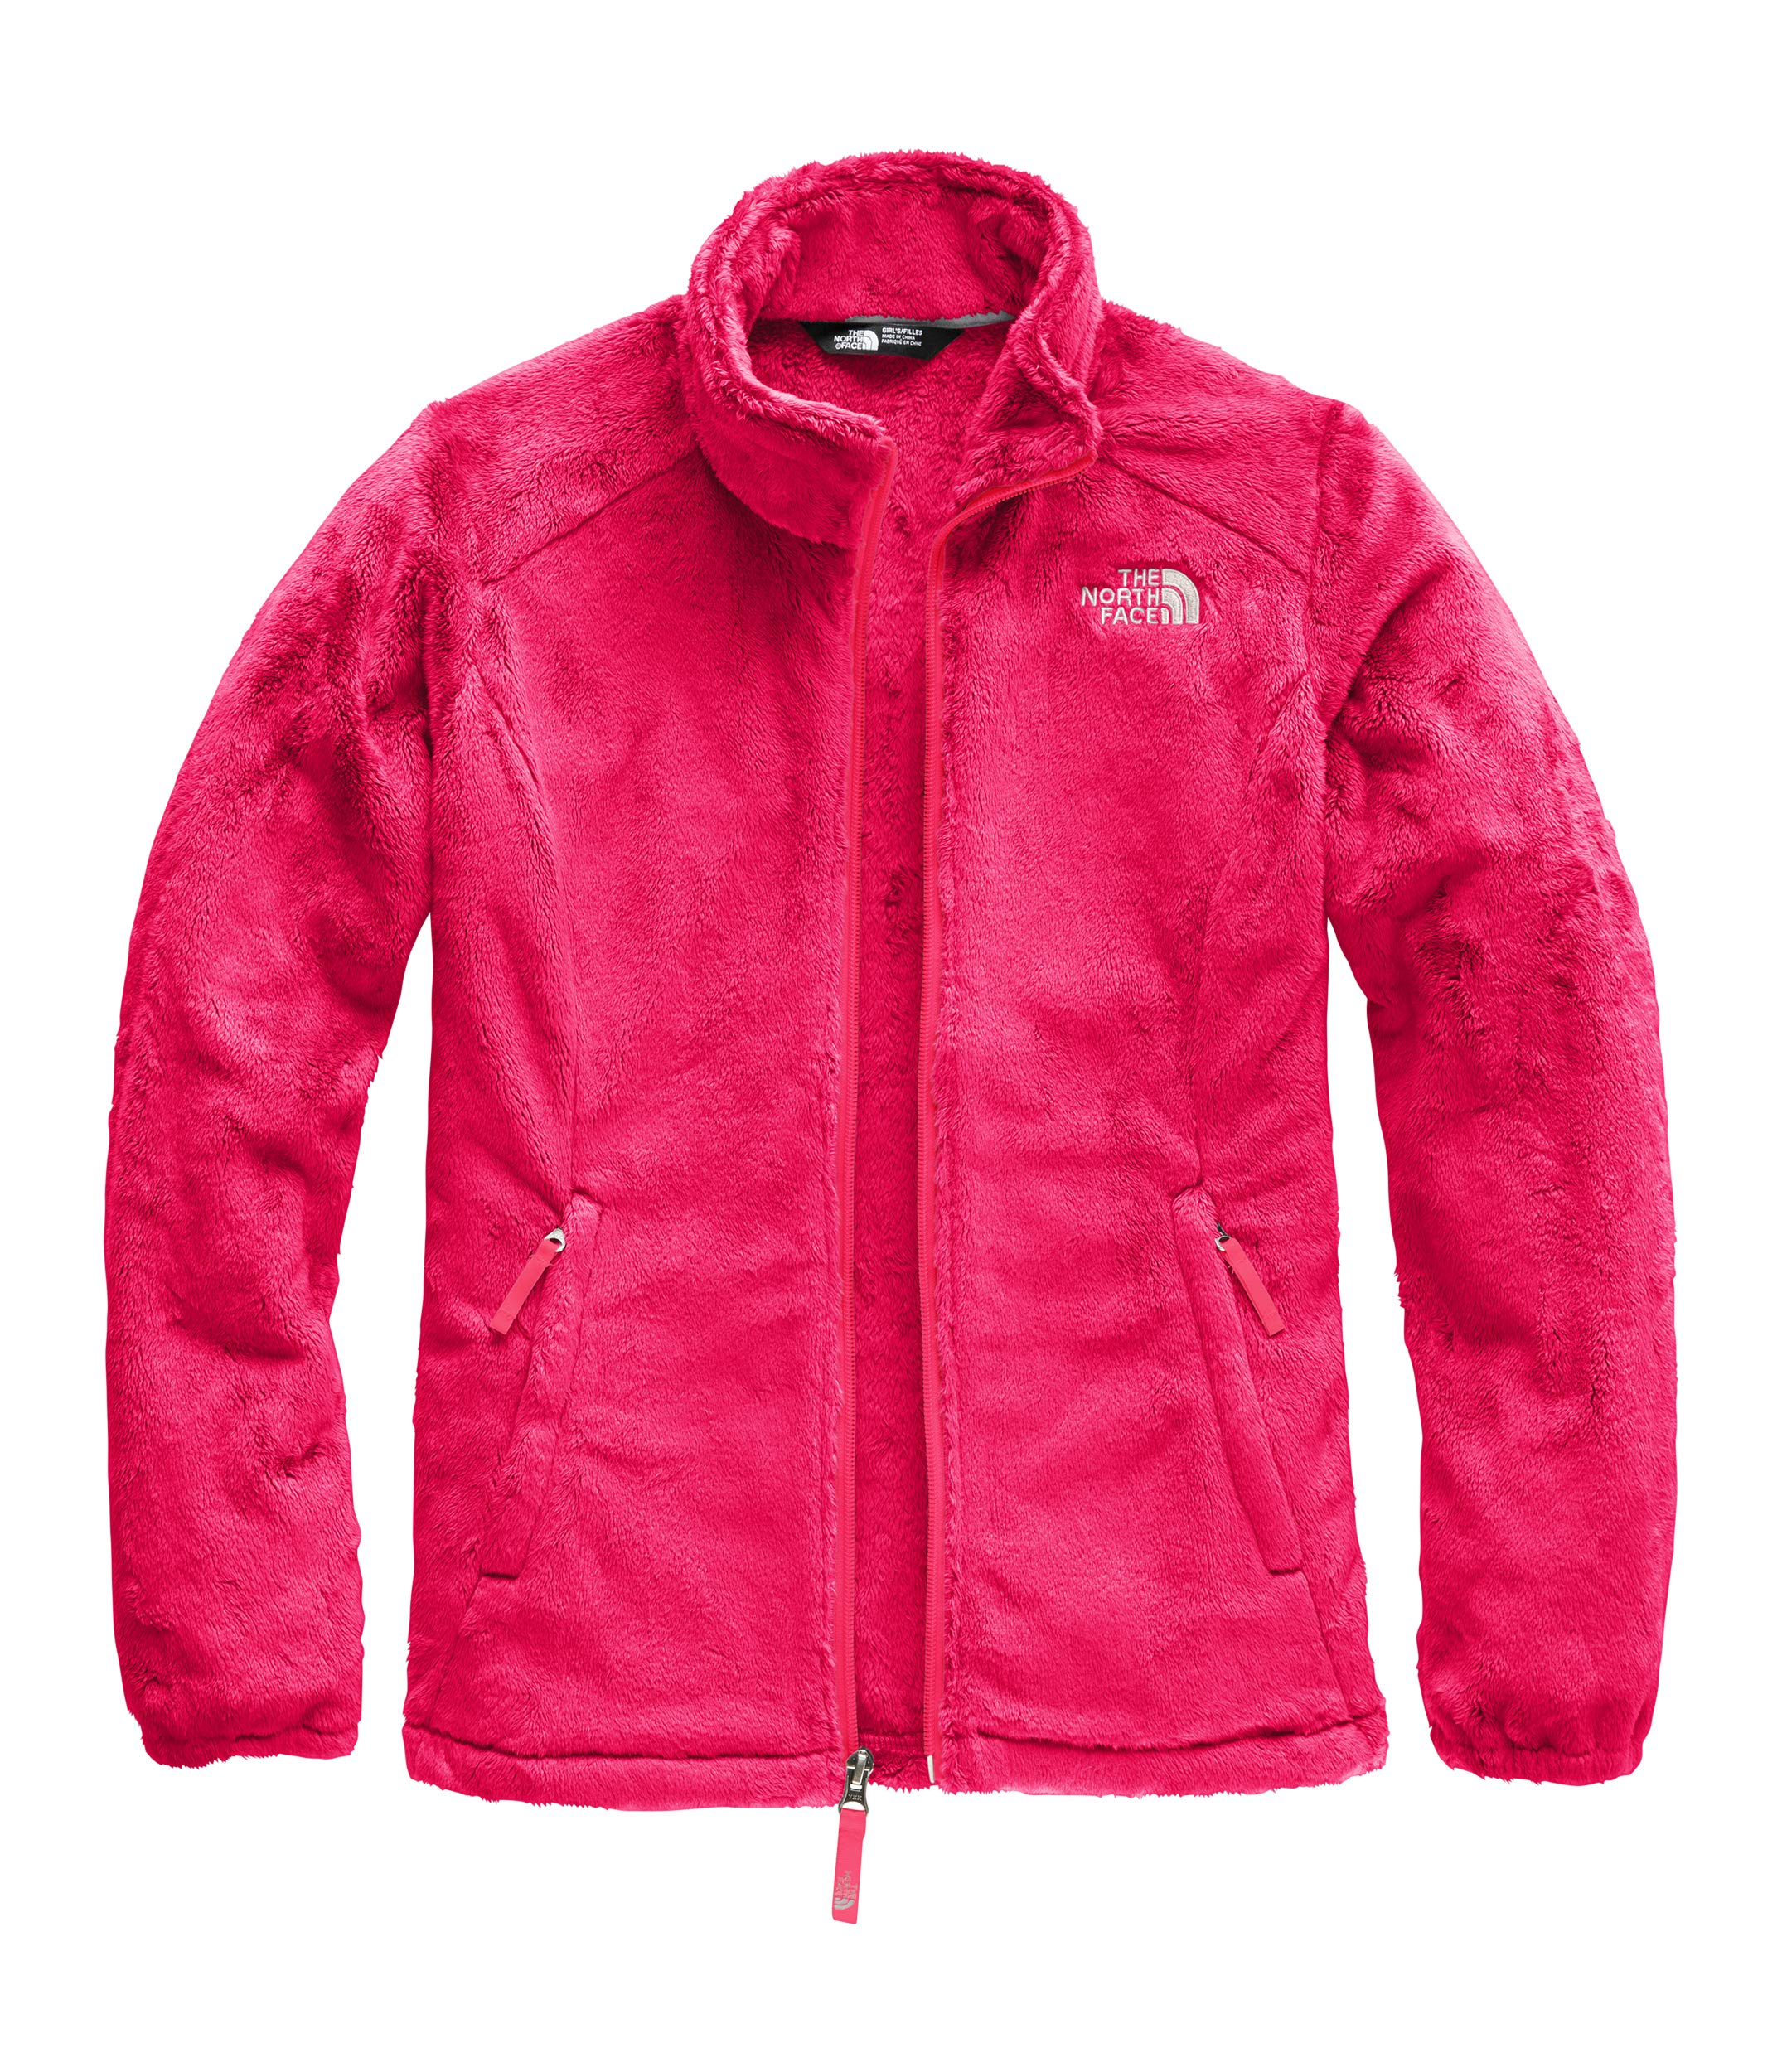 The North Face Girls' Osolita Jacket, Atomic Pink, XX-Small